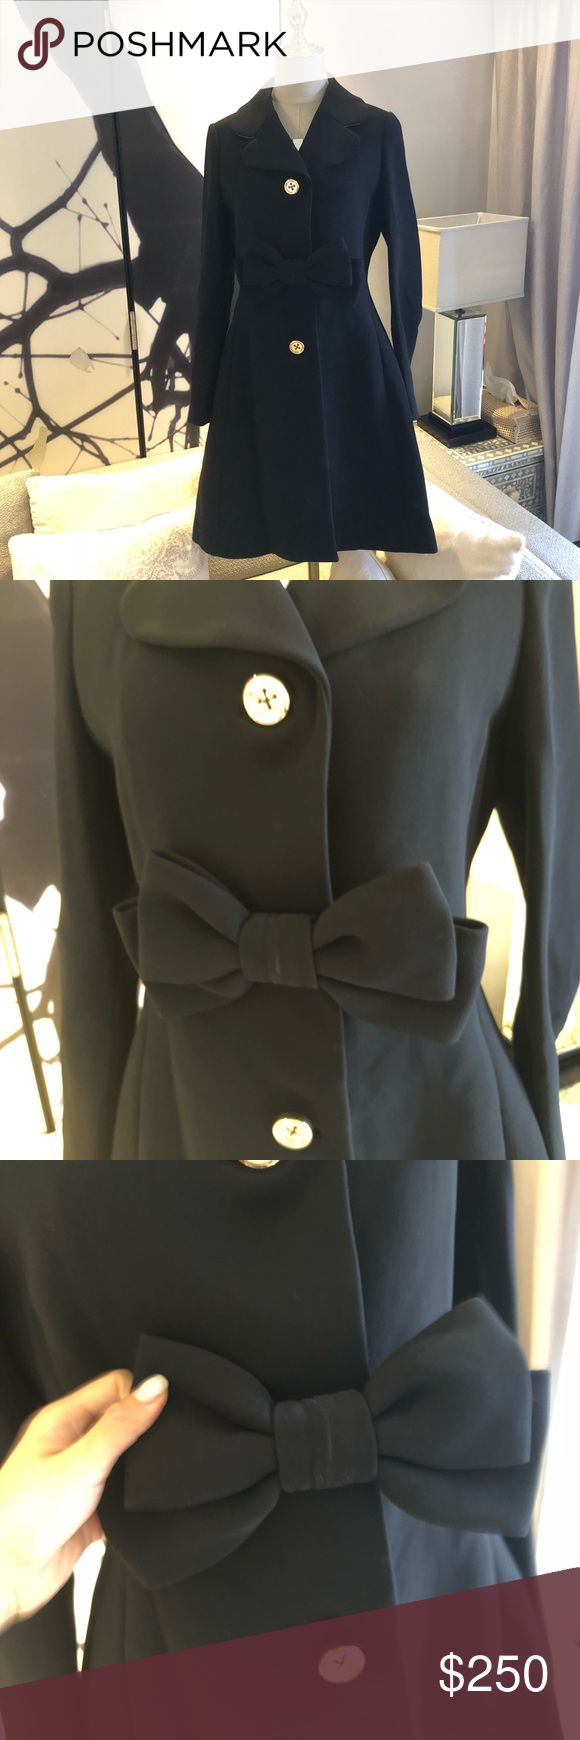 Kate Spade Madison Avenue Black trench coat With a really cute bow. Brand new condition, store sample so the label has to be marked. Size US4. kate spade Jackets & Coats Trench Coats